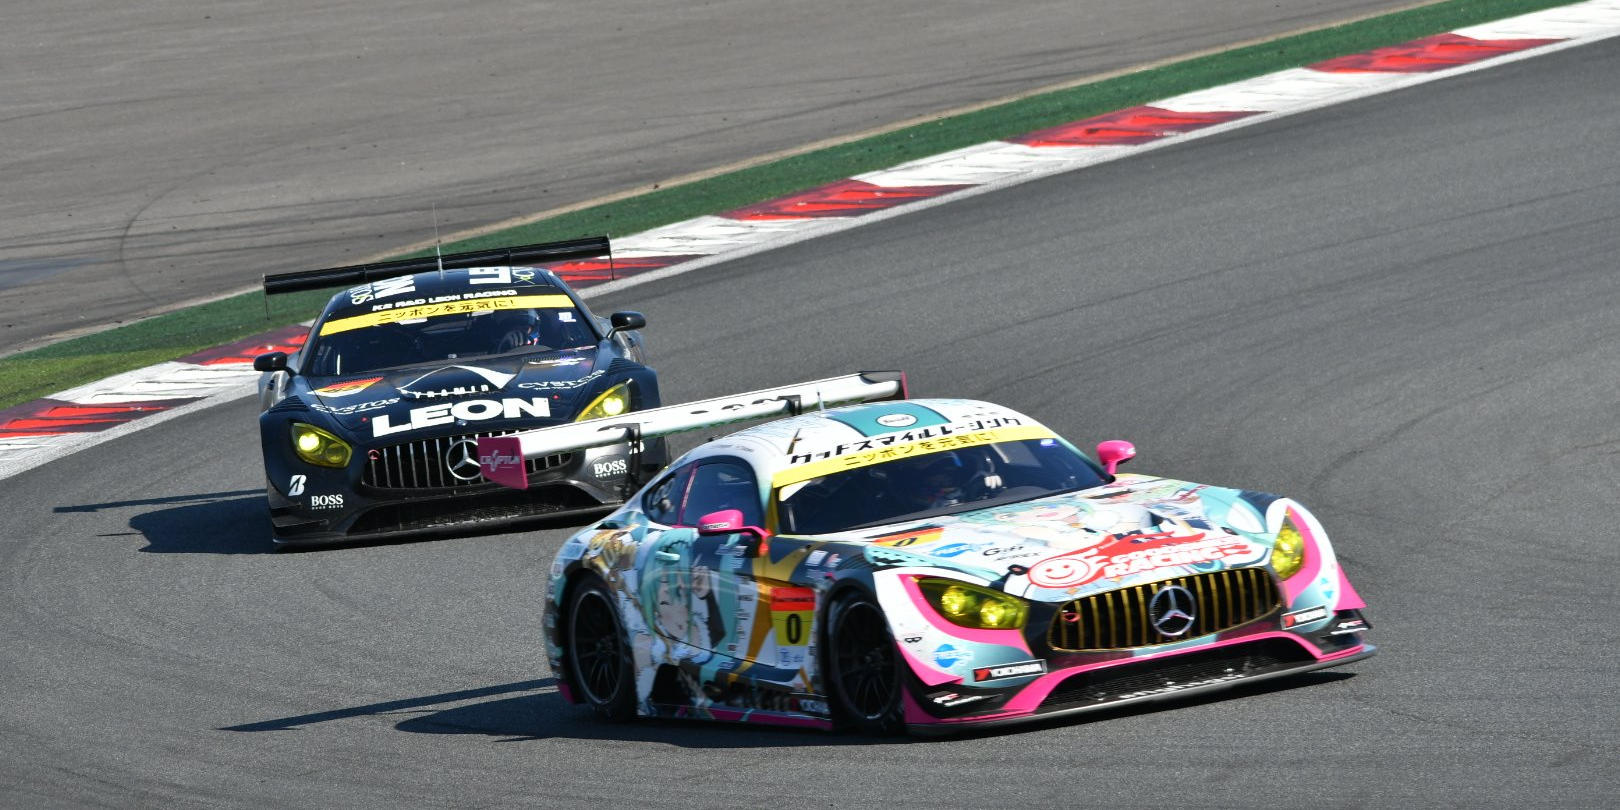 Fuji 500km - GoodSmile Racing finished 5th after strategy disaster.